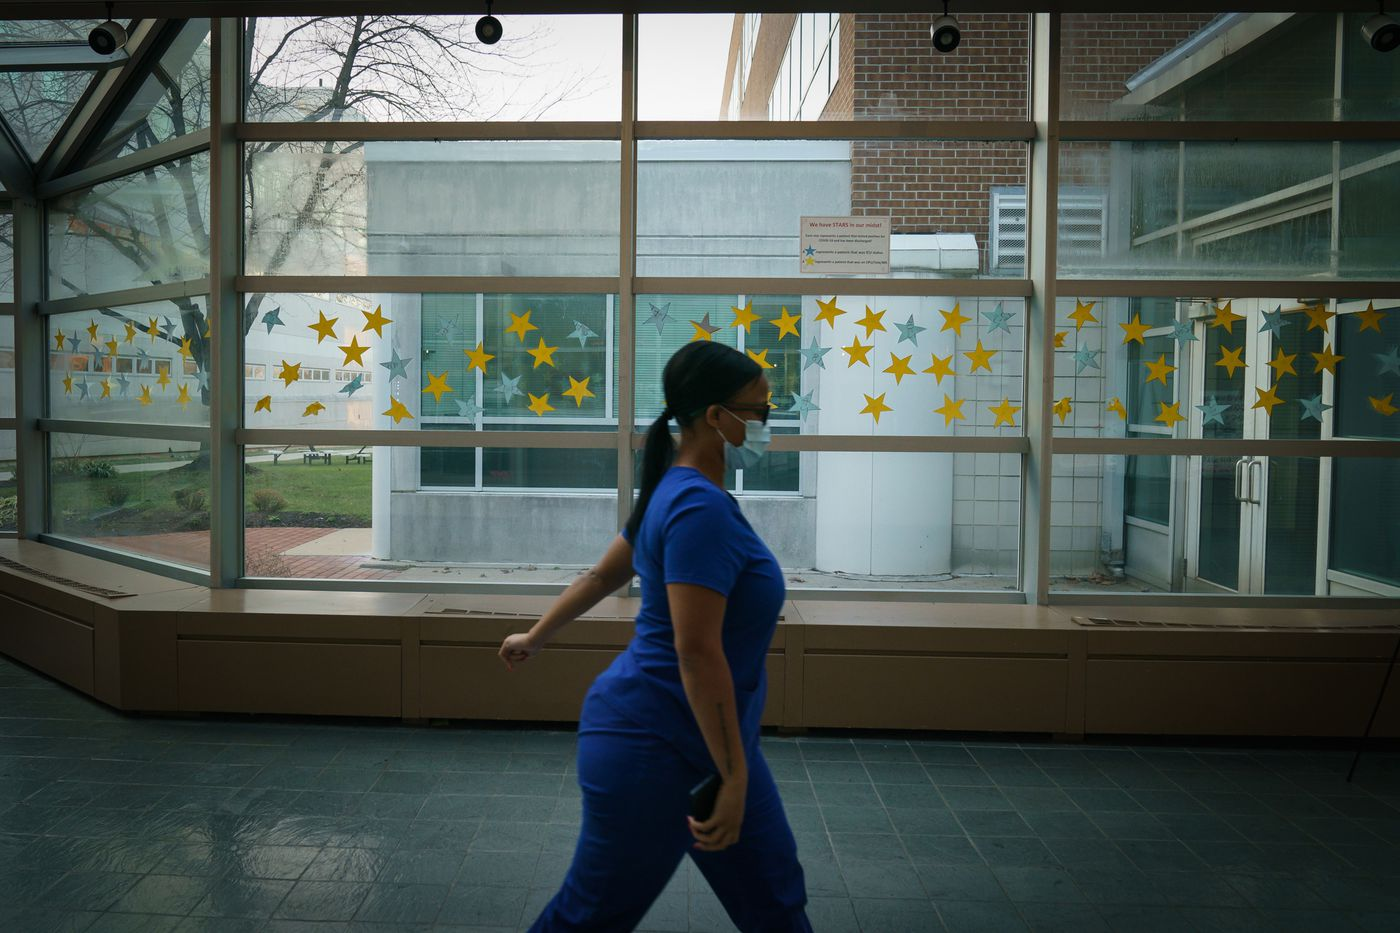 A staff person walks past a display of stars, each one representing a patient who tested positive for COVID-19 and was discharged from Suburban Community Hospital.